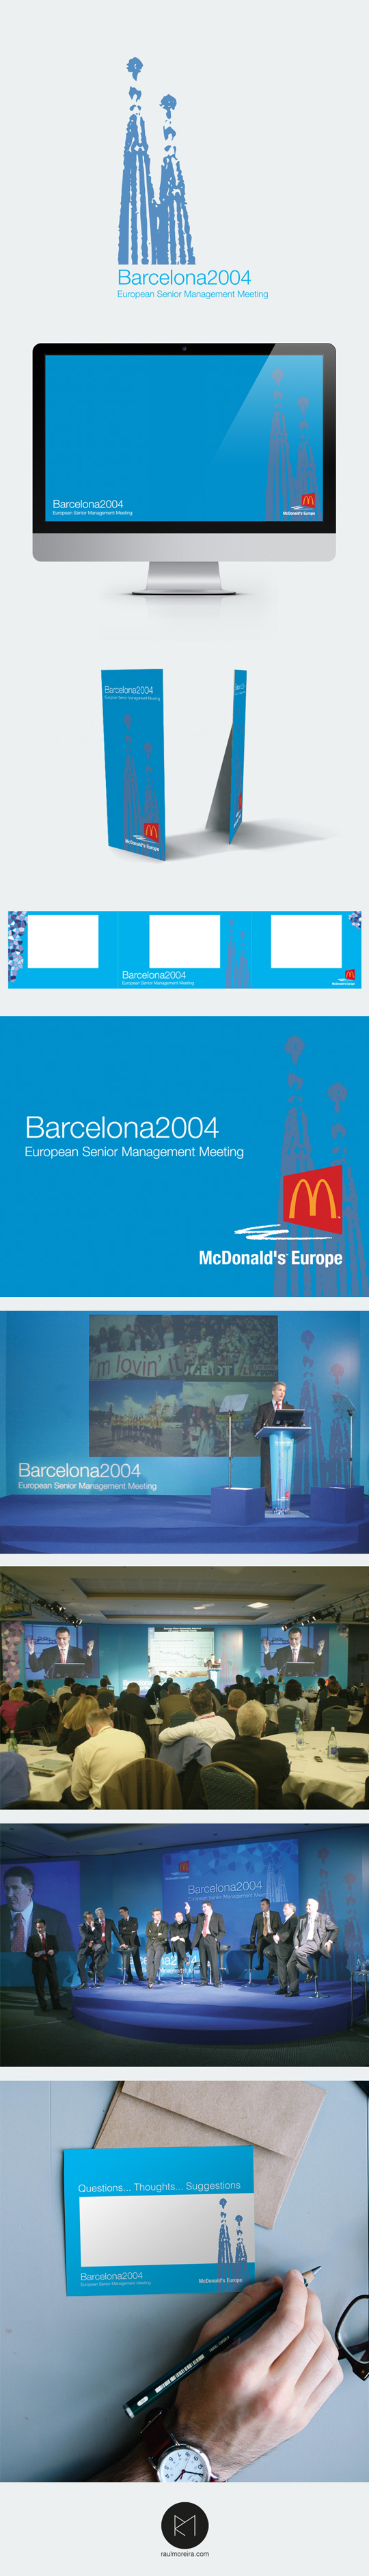 McDonalds European Senior Management Meeting, logotipos creativos Madrid